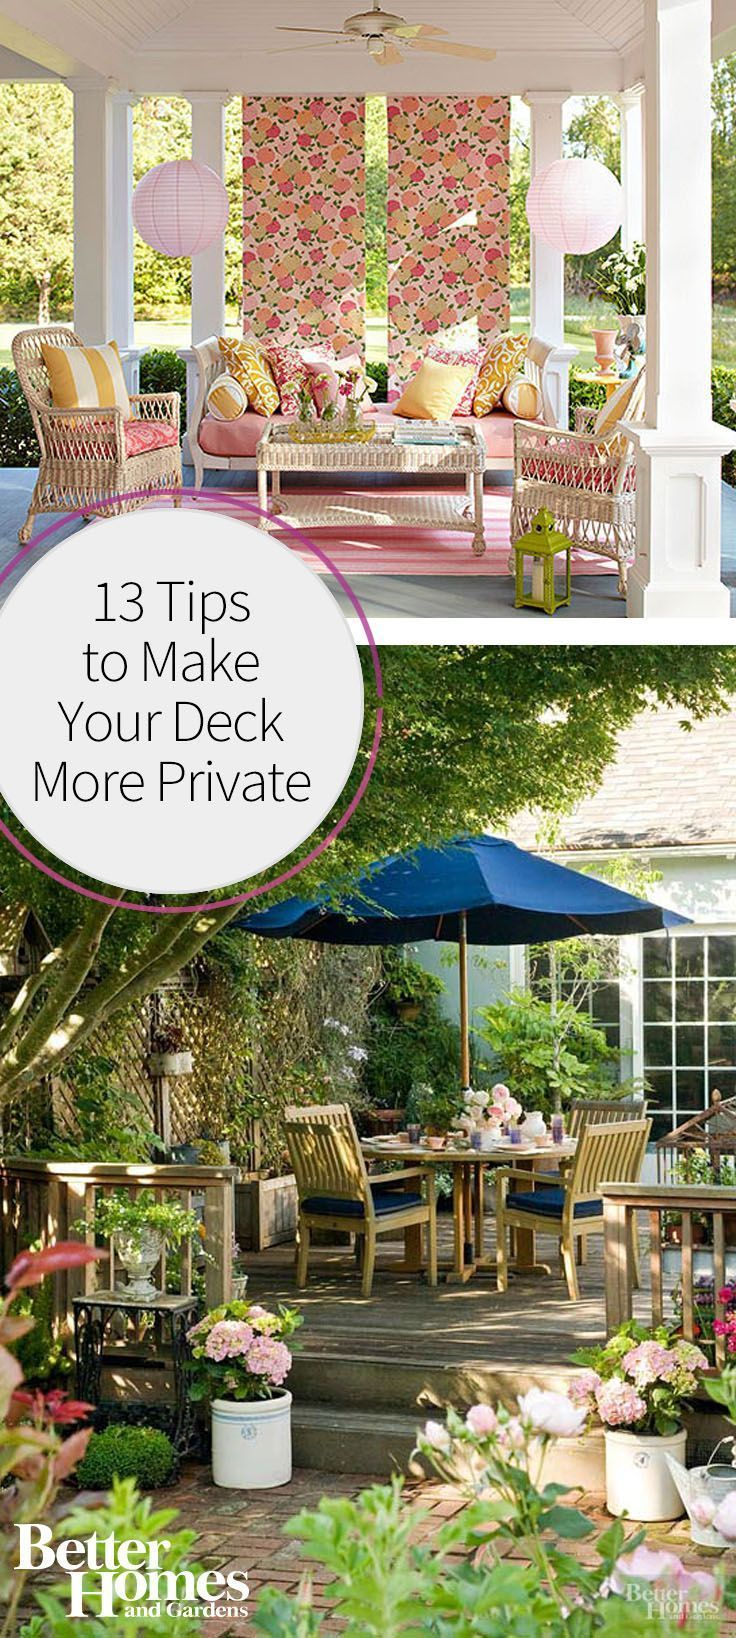 13 Tips to Make Your Deck More Private   Decking